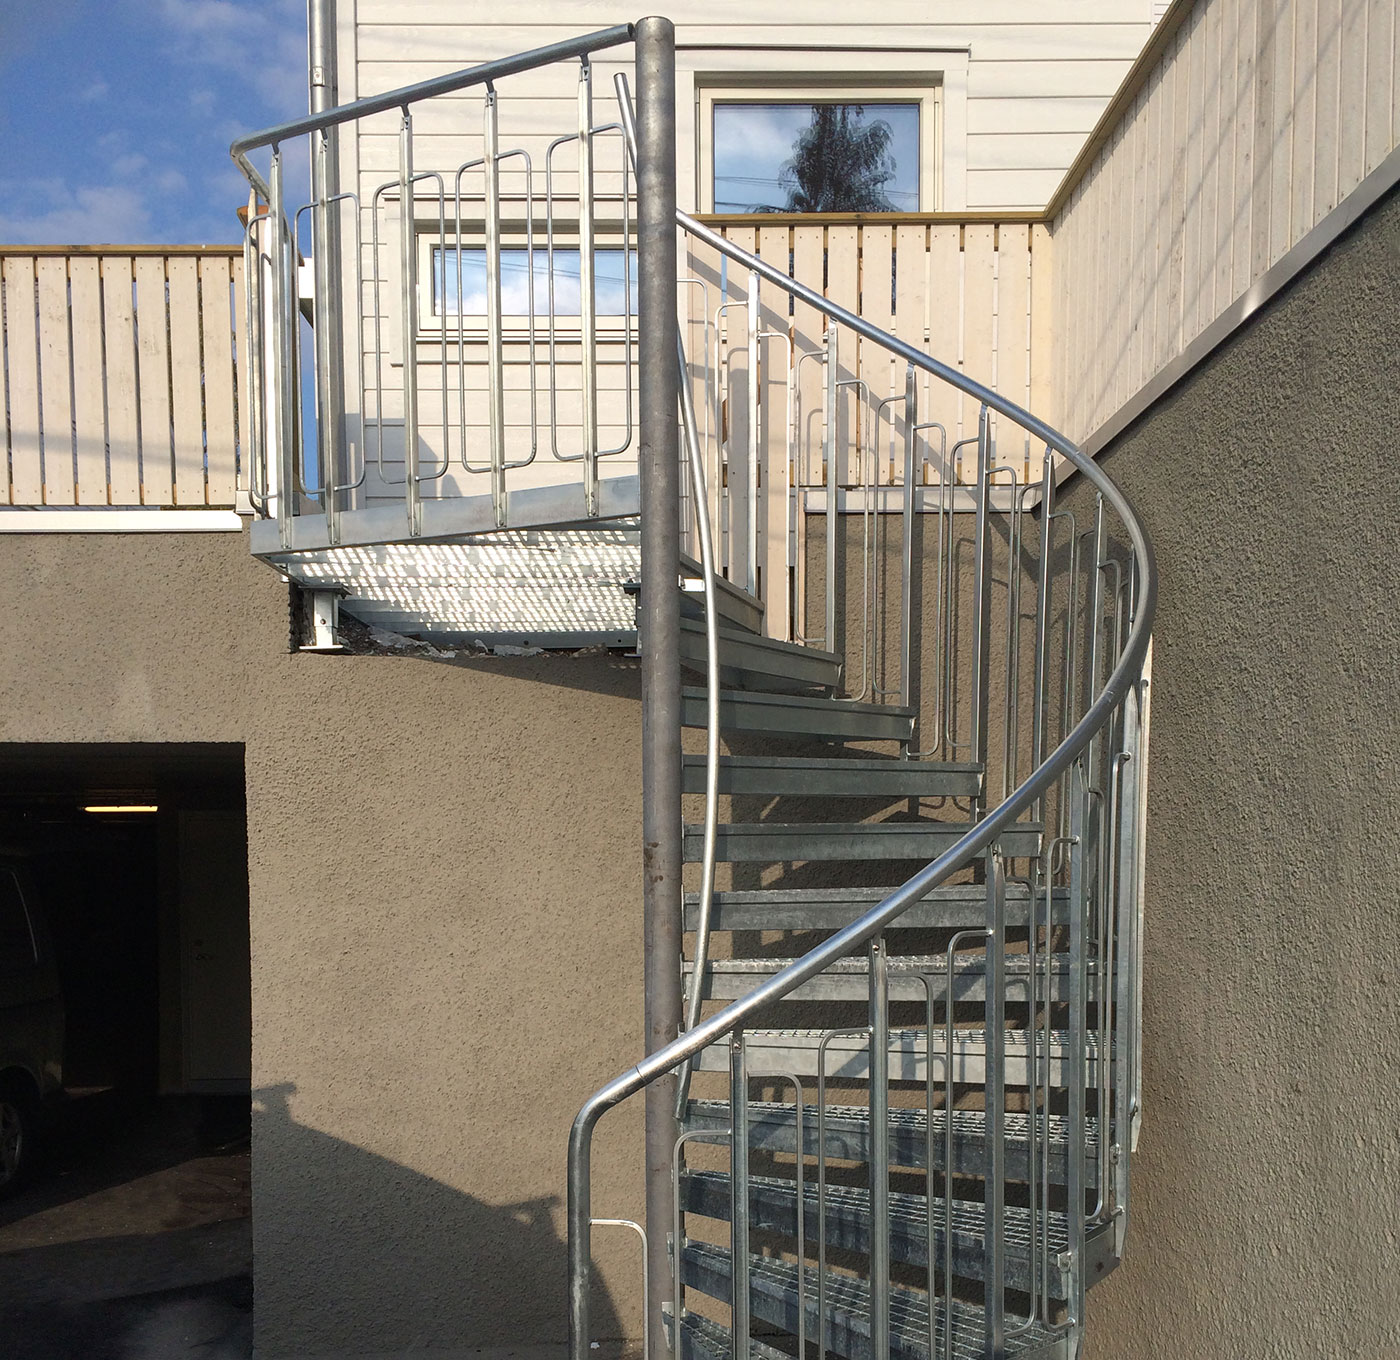 Childsafe spiral staircase with handrail on center tube